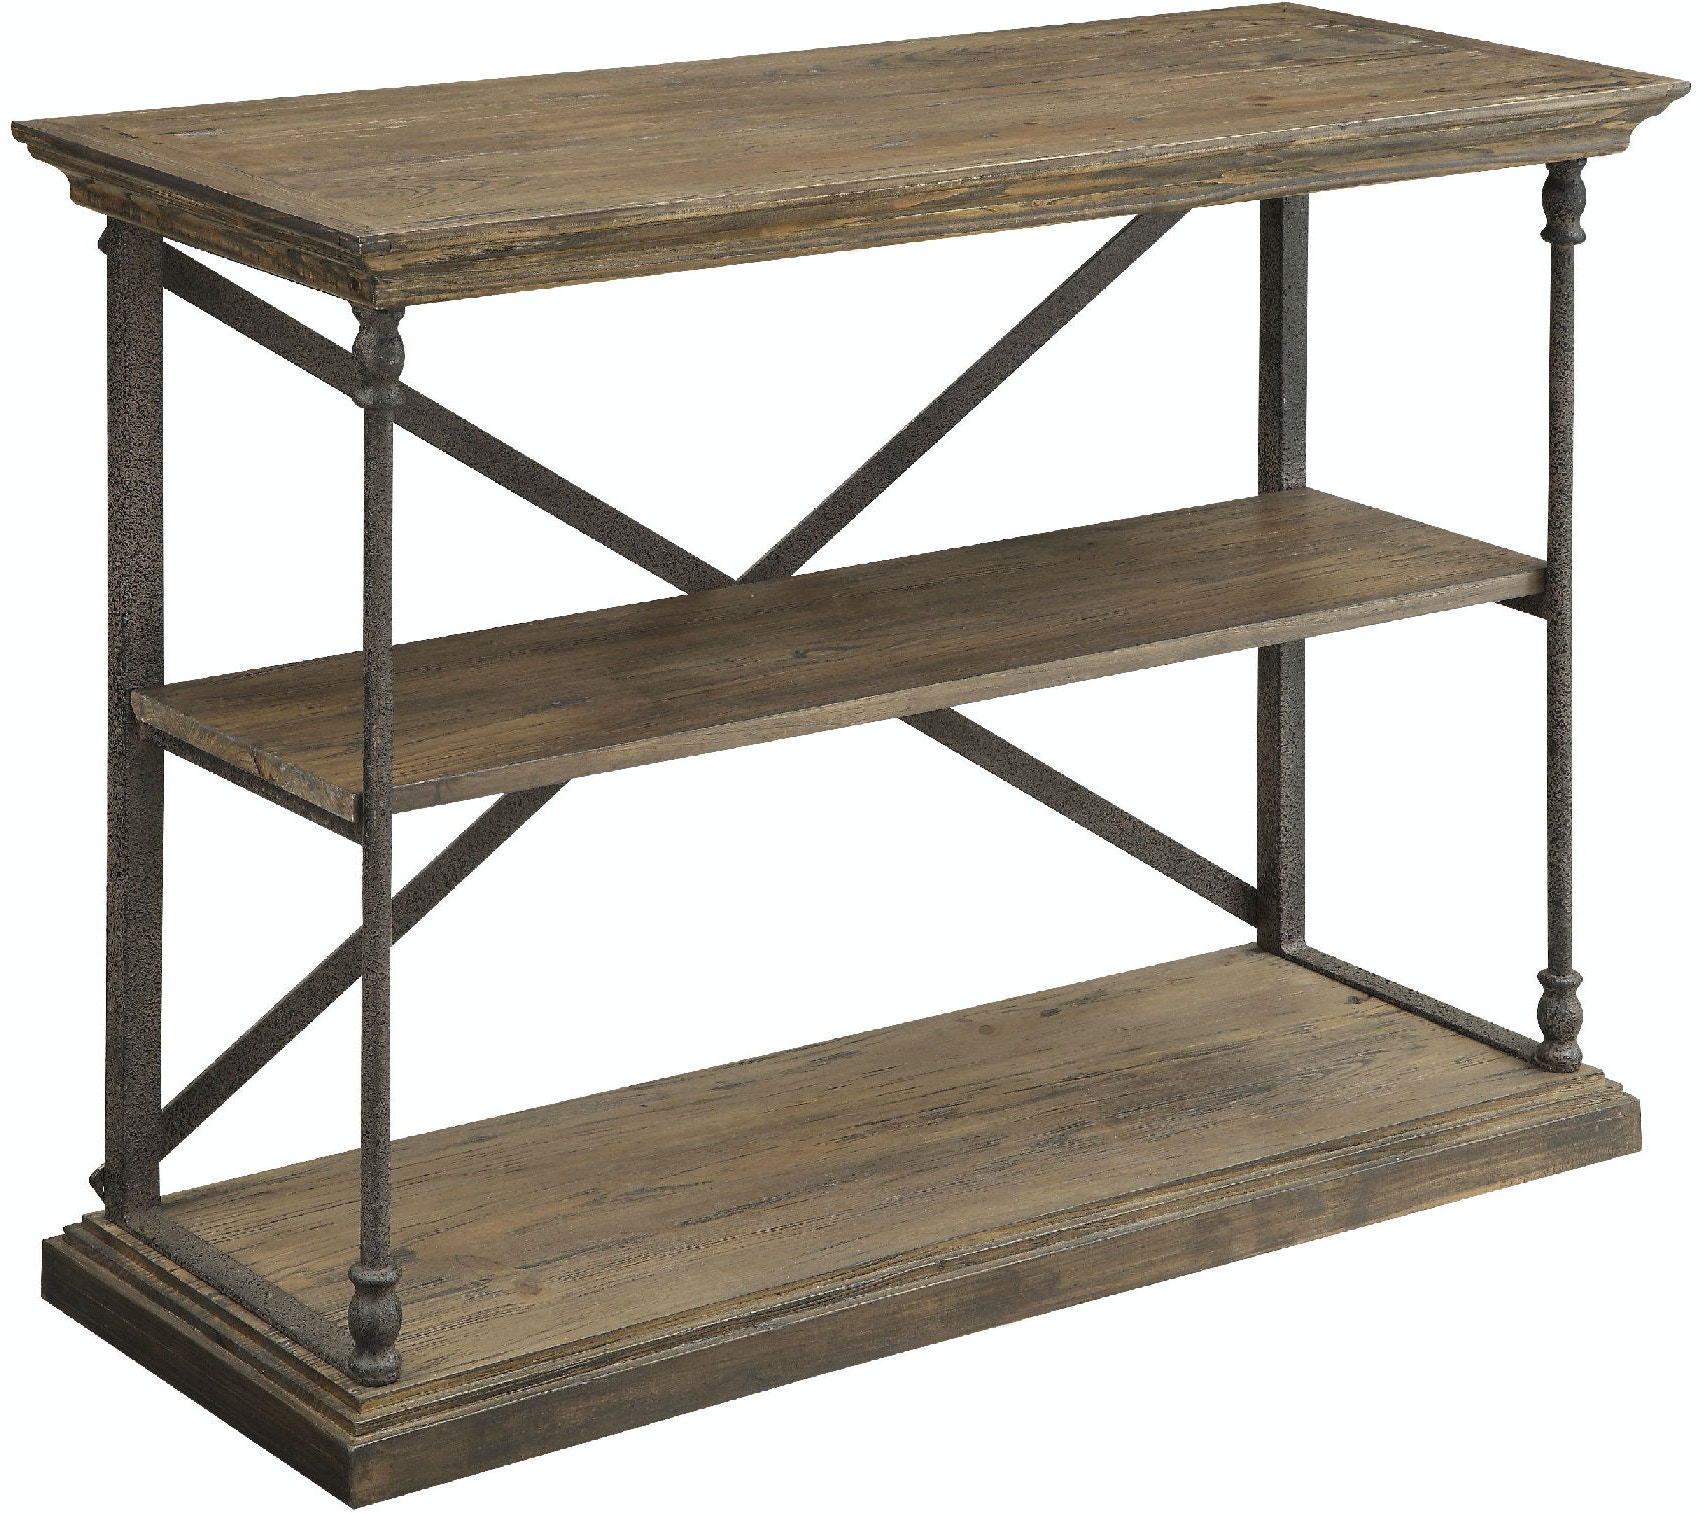 Coast to Coast Accents Living Room Console Table : 61623 1  from www.bobmillsfurniture.com size 1024 x 768 jpeg 66kB